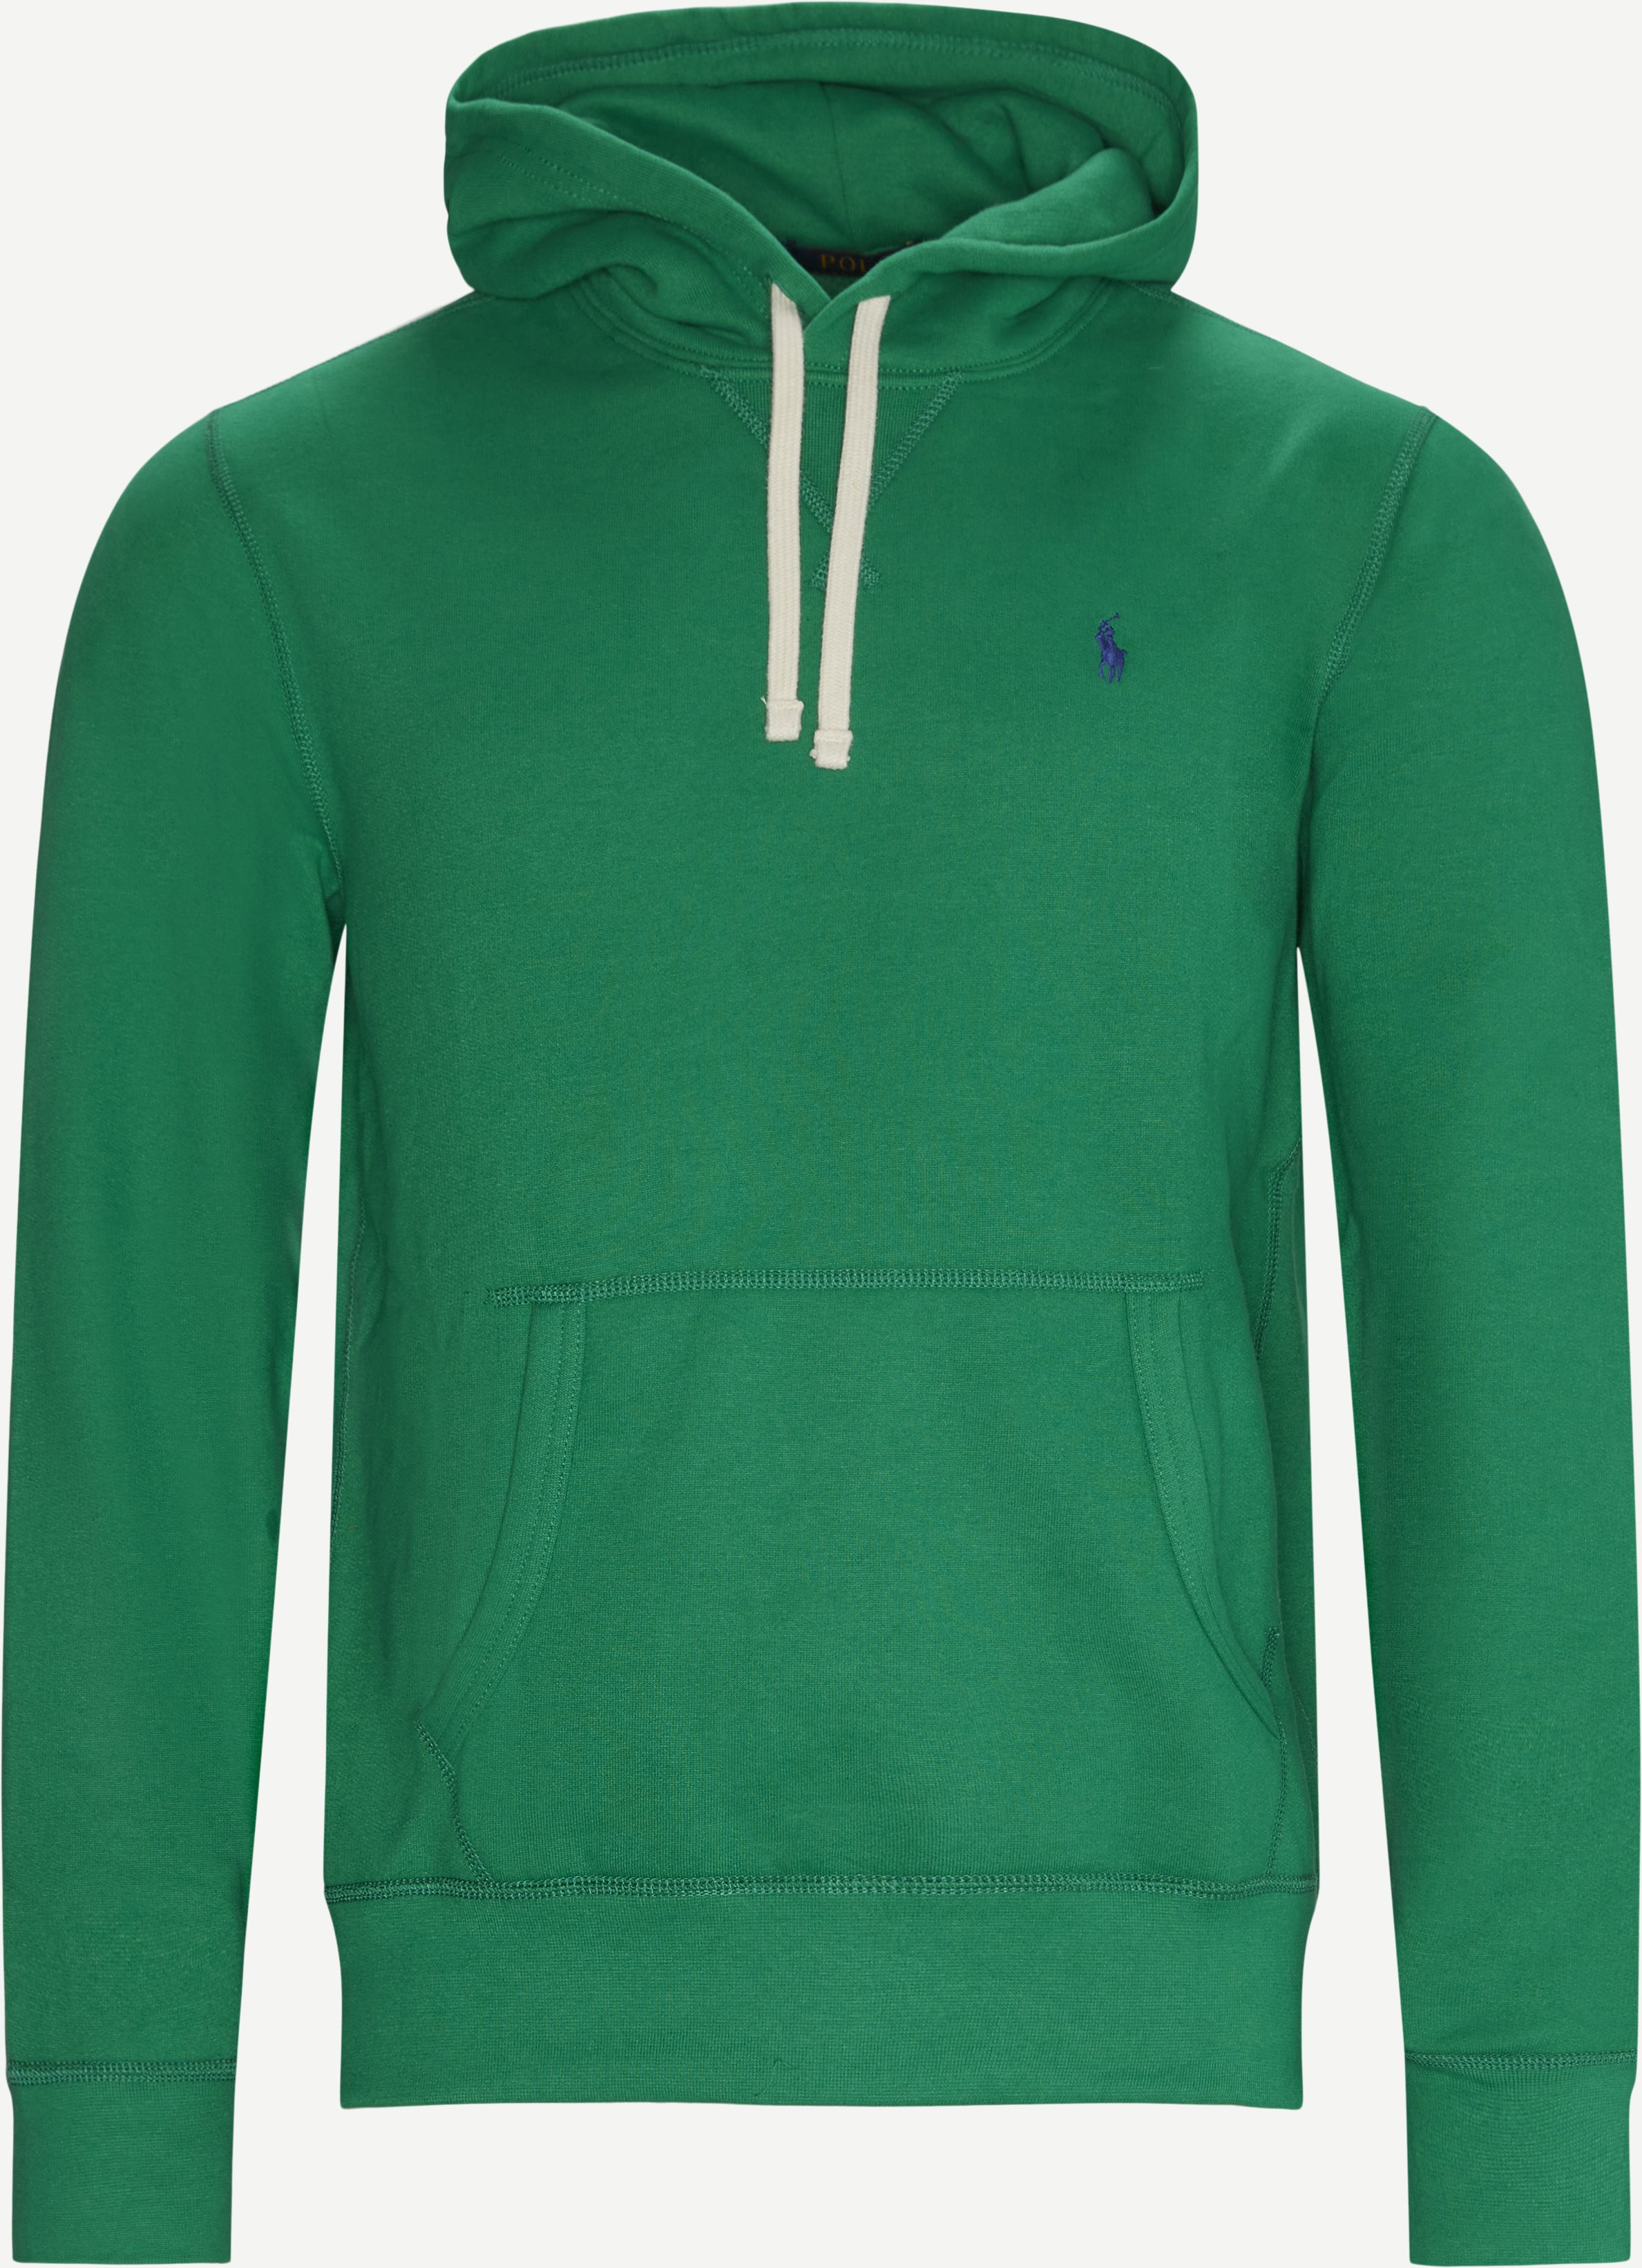 Hooded Sweatshirt - Sweatshirts - Regular - Green